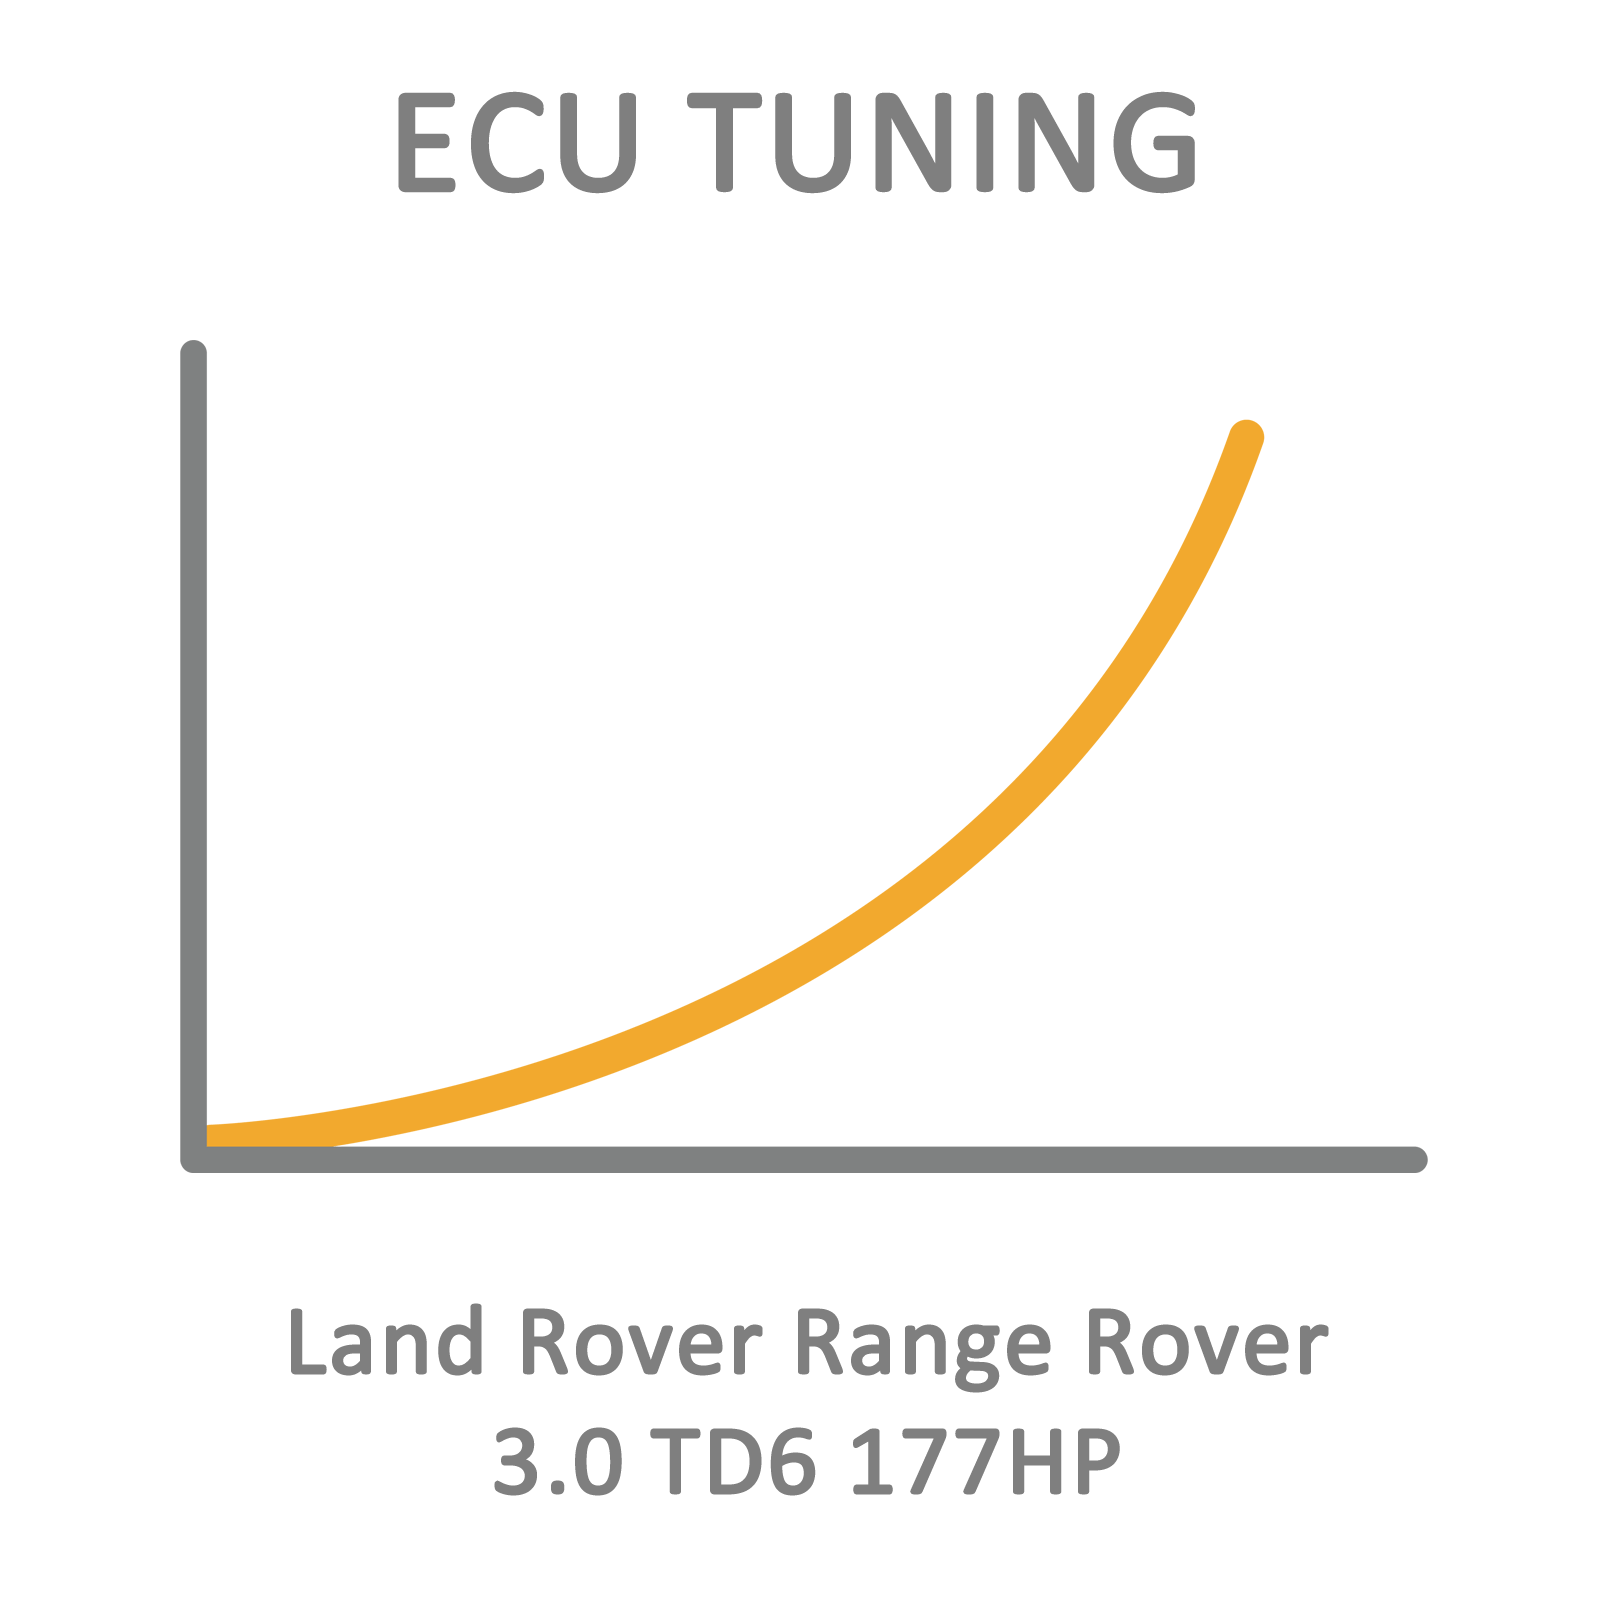 Land Rover Range Rover 3.0 TD6 177HP ECU Tuning Remapping